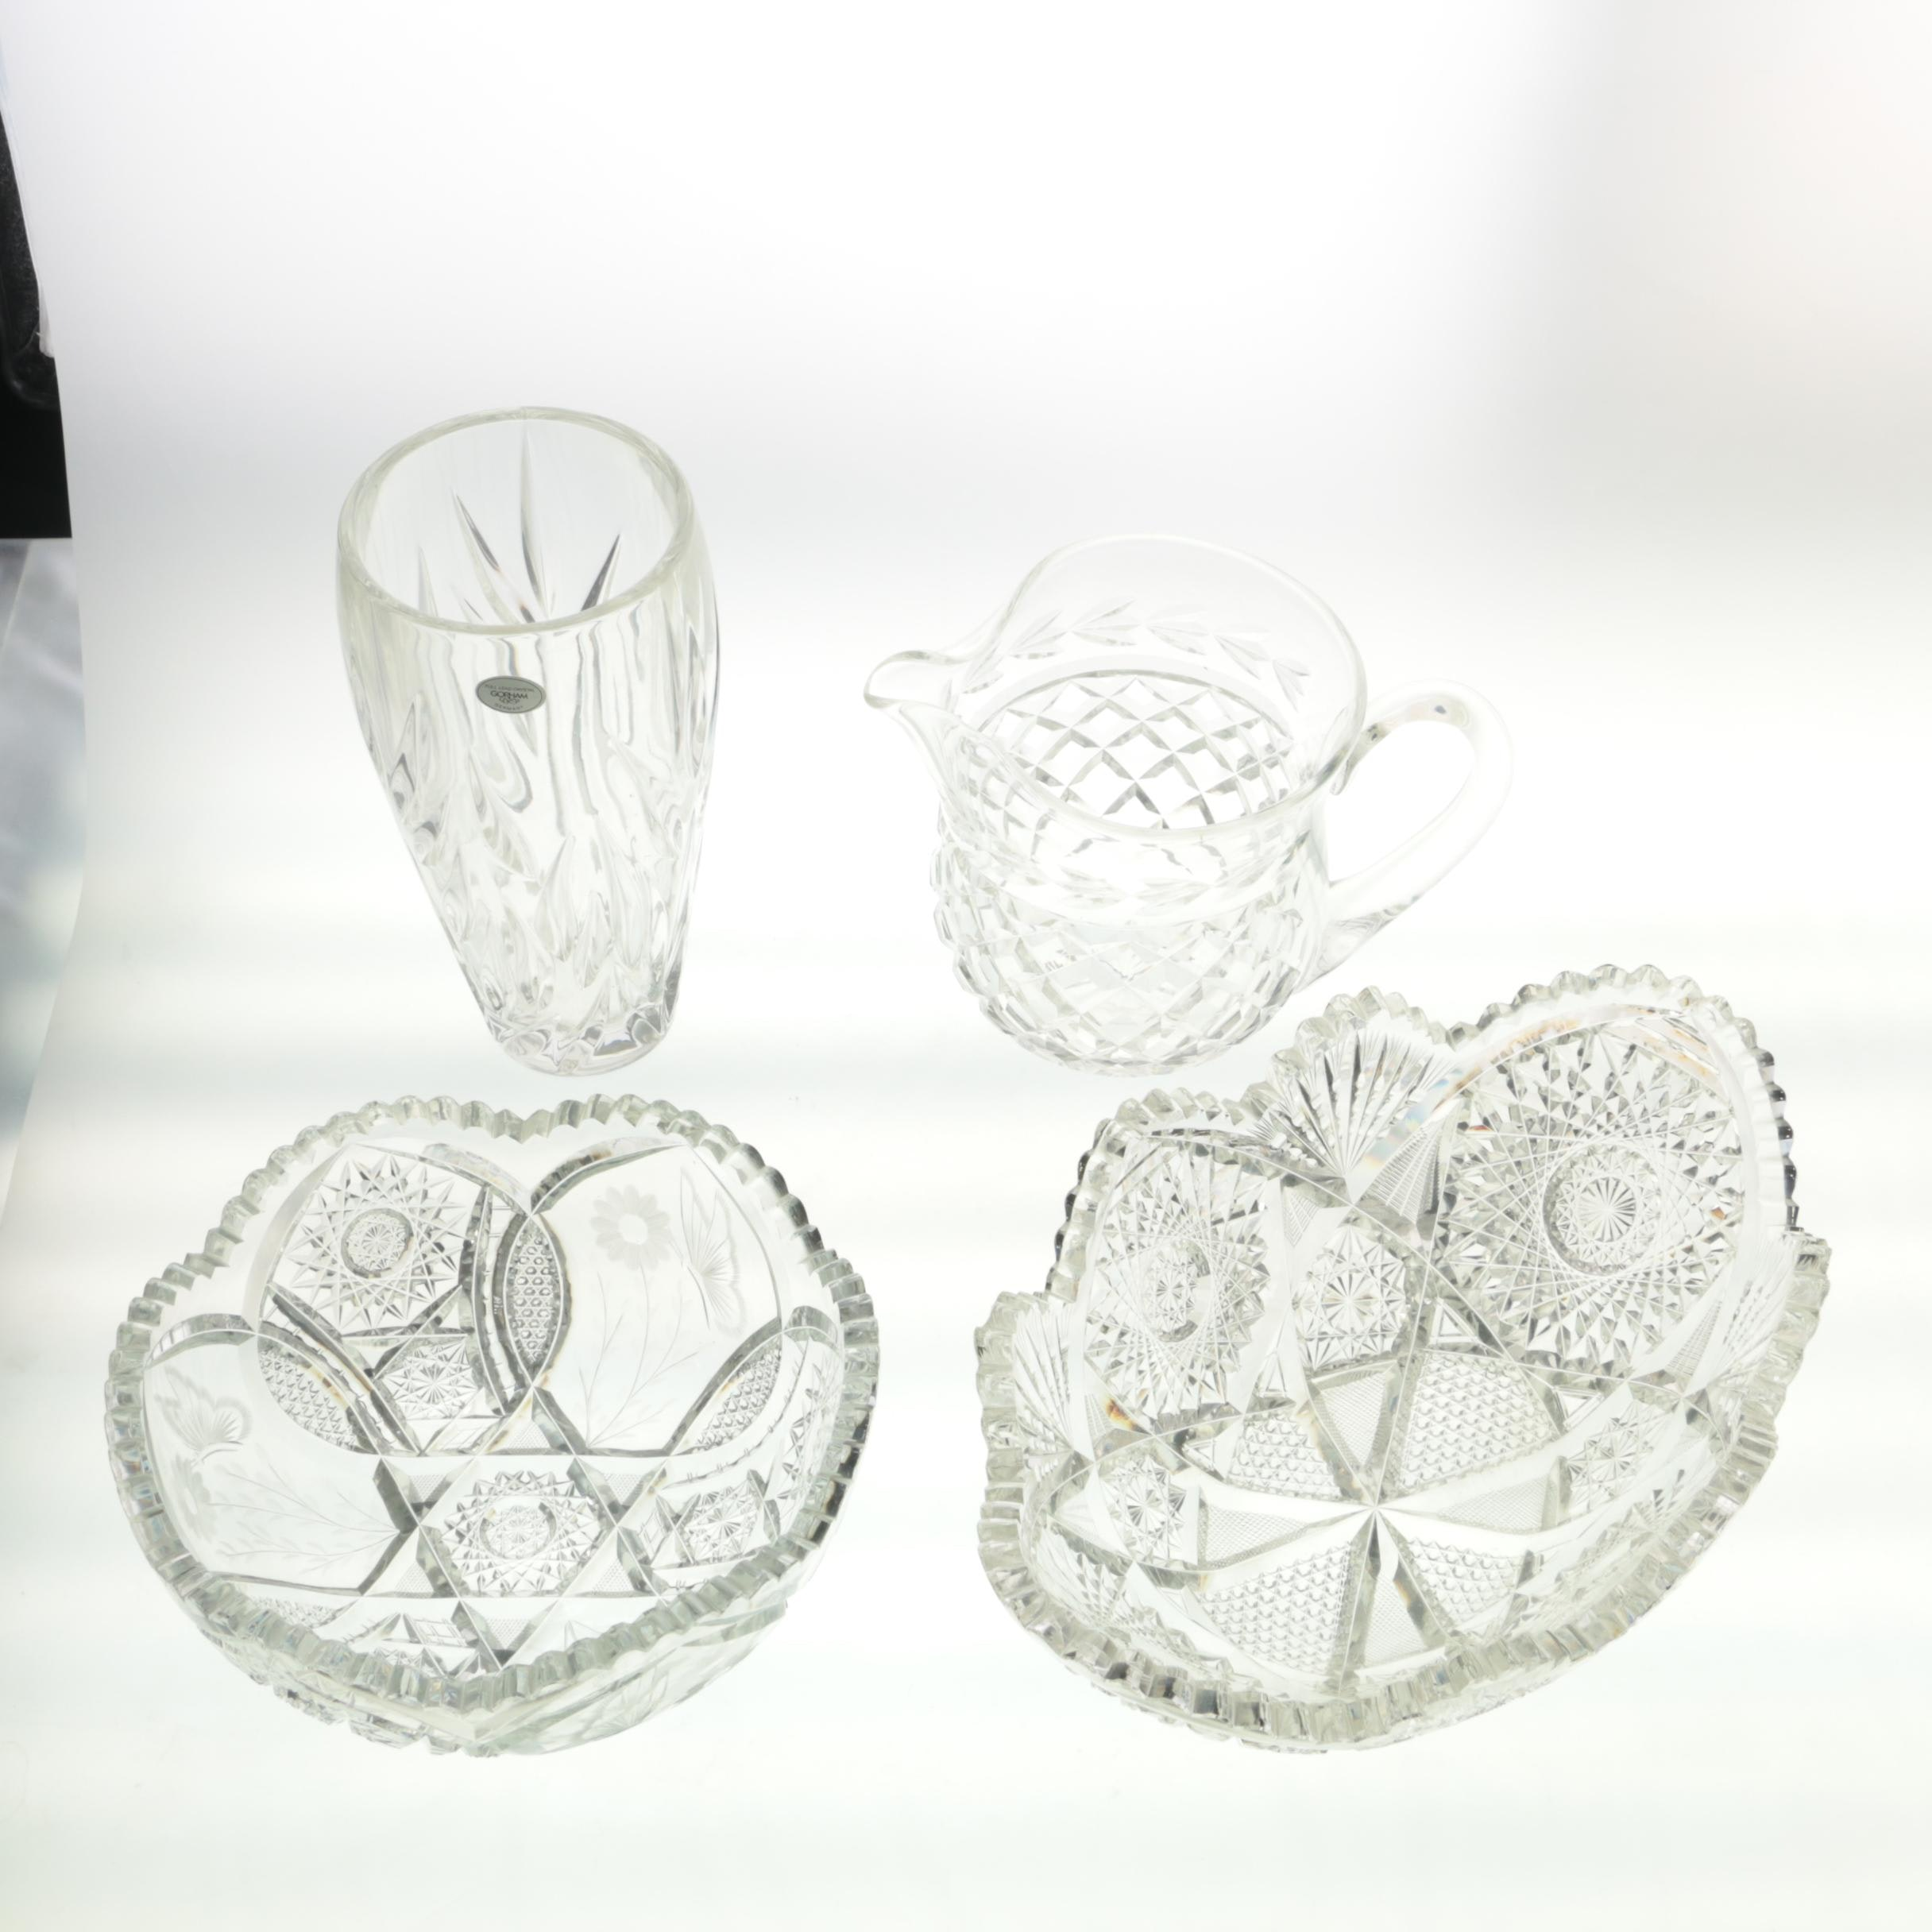 Waterford Crystal Creamer and Other Crystal Tableware